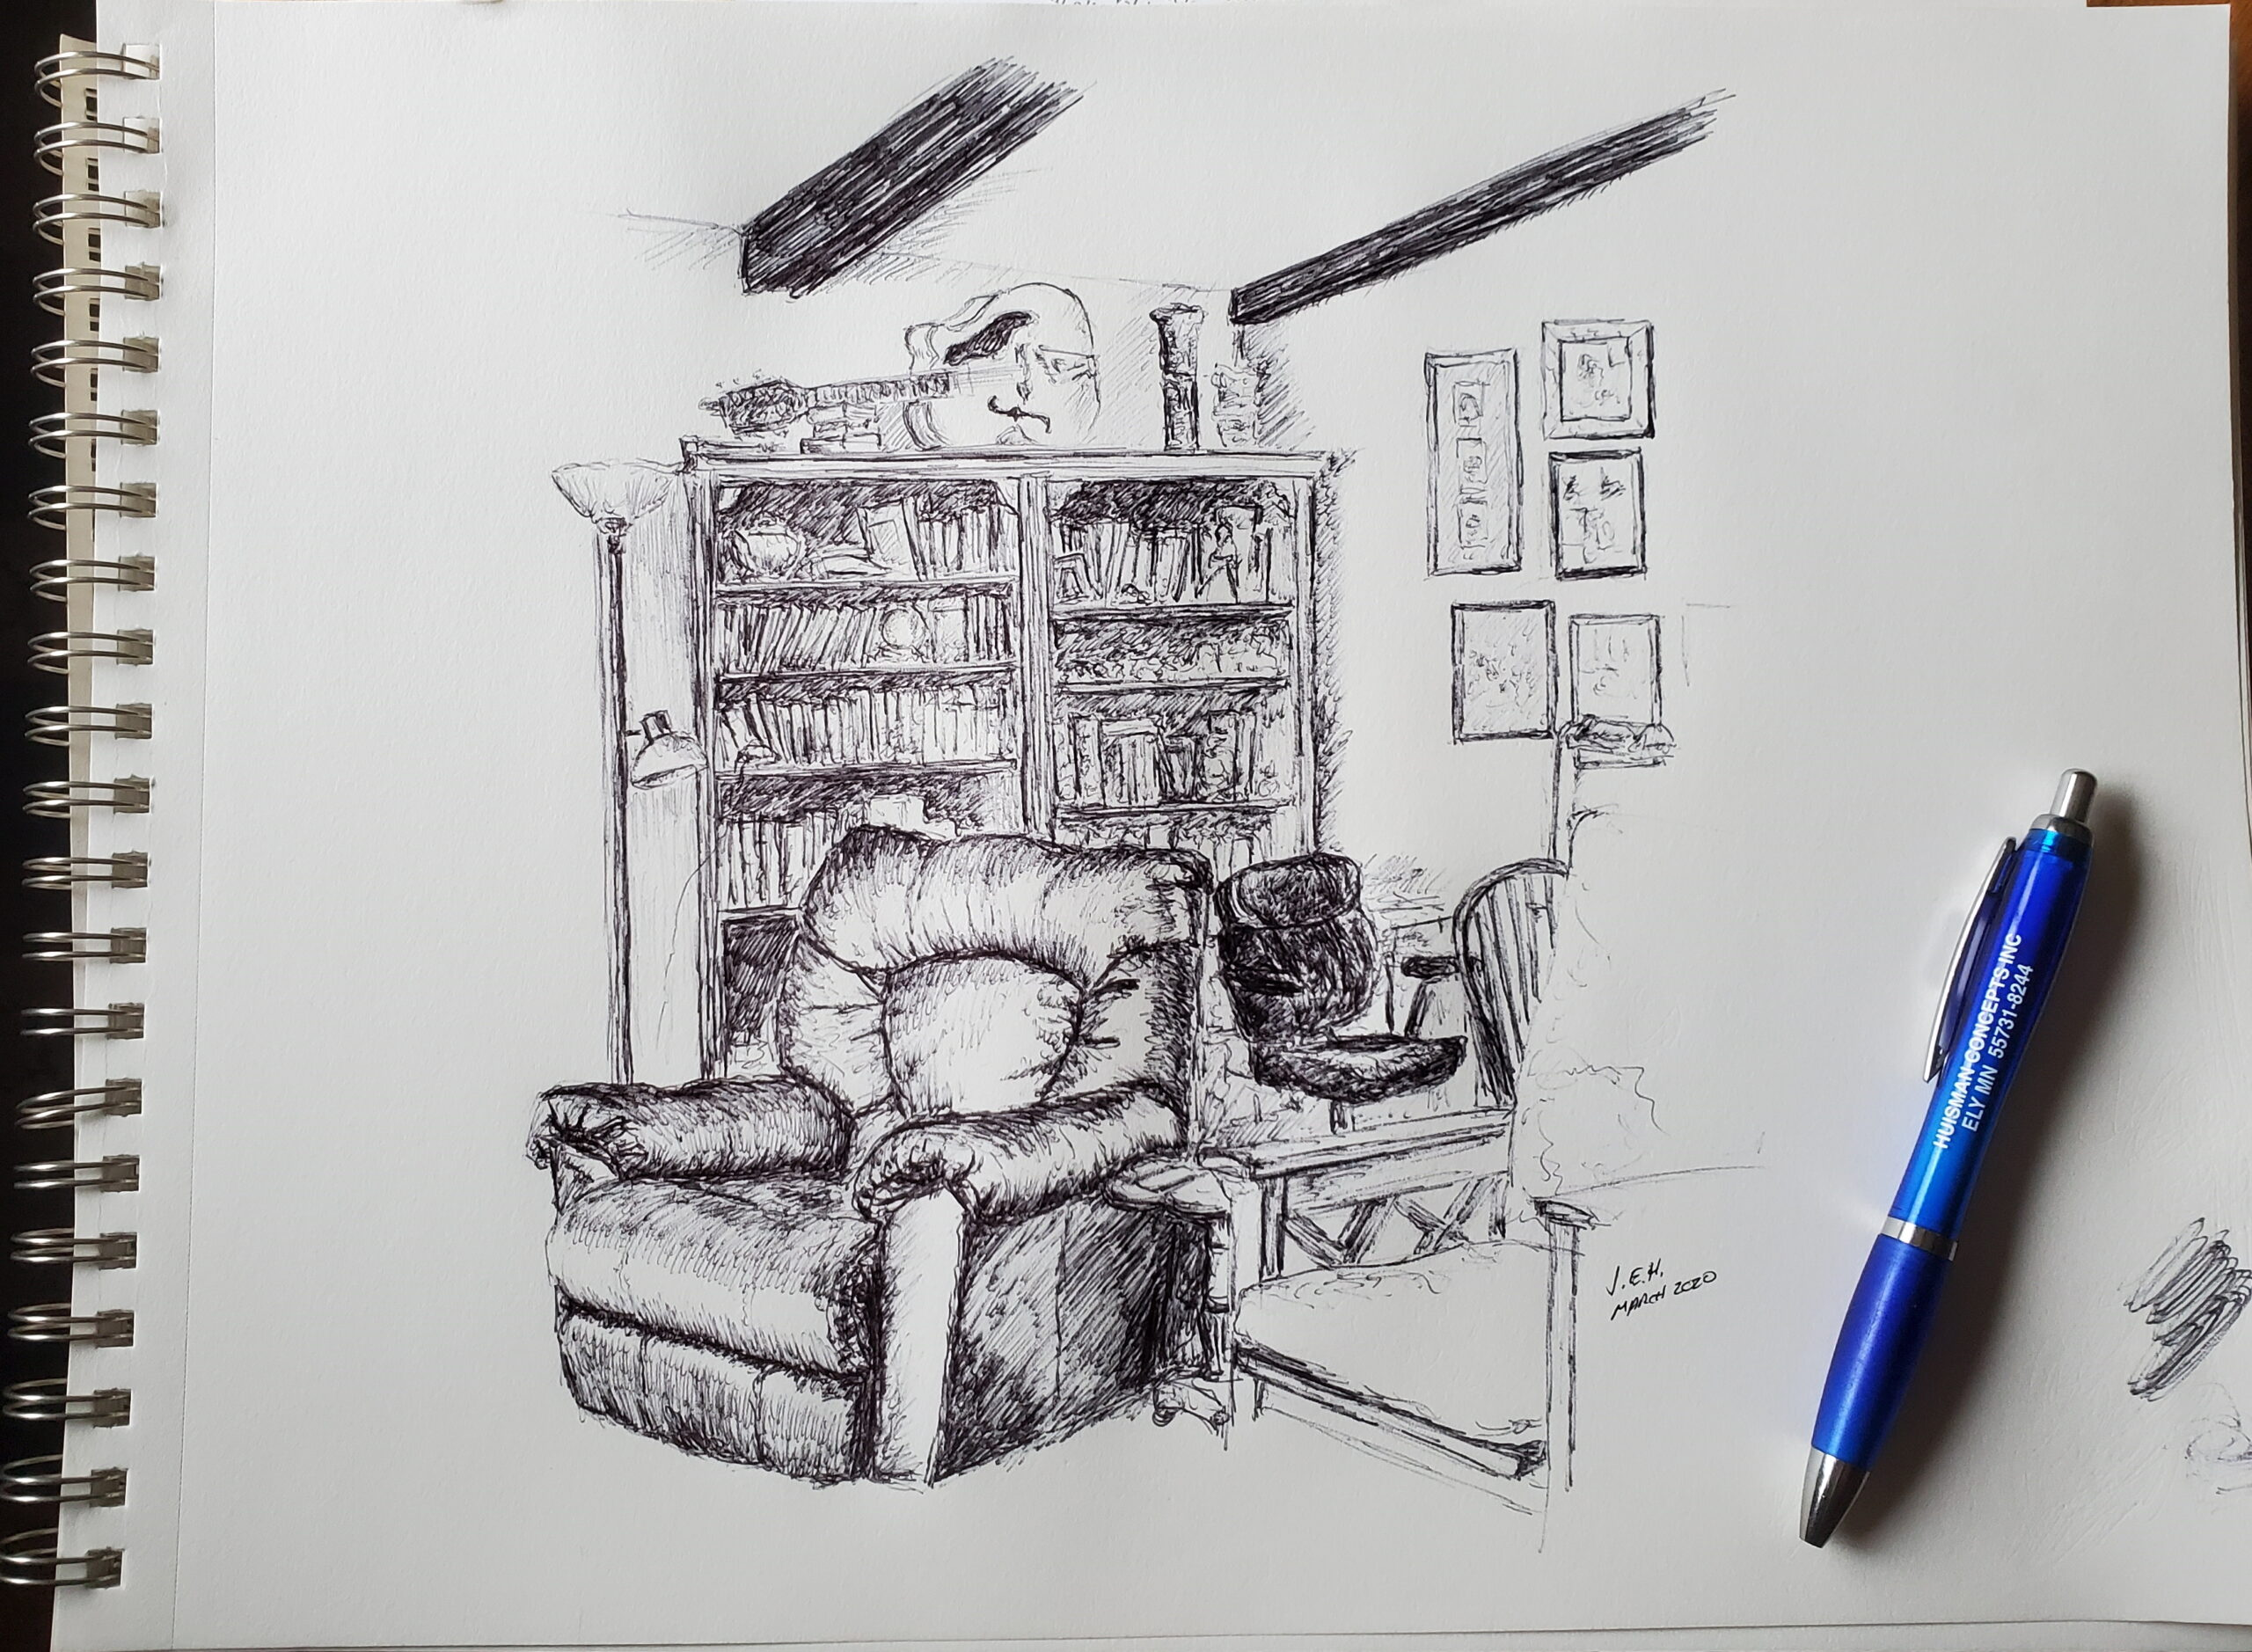 Ball Point pen sketch by John Huisman